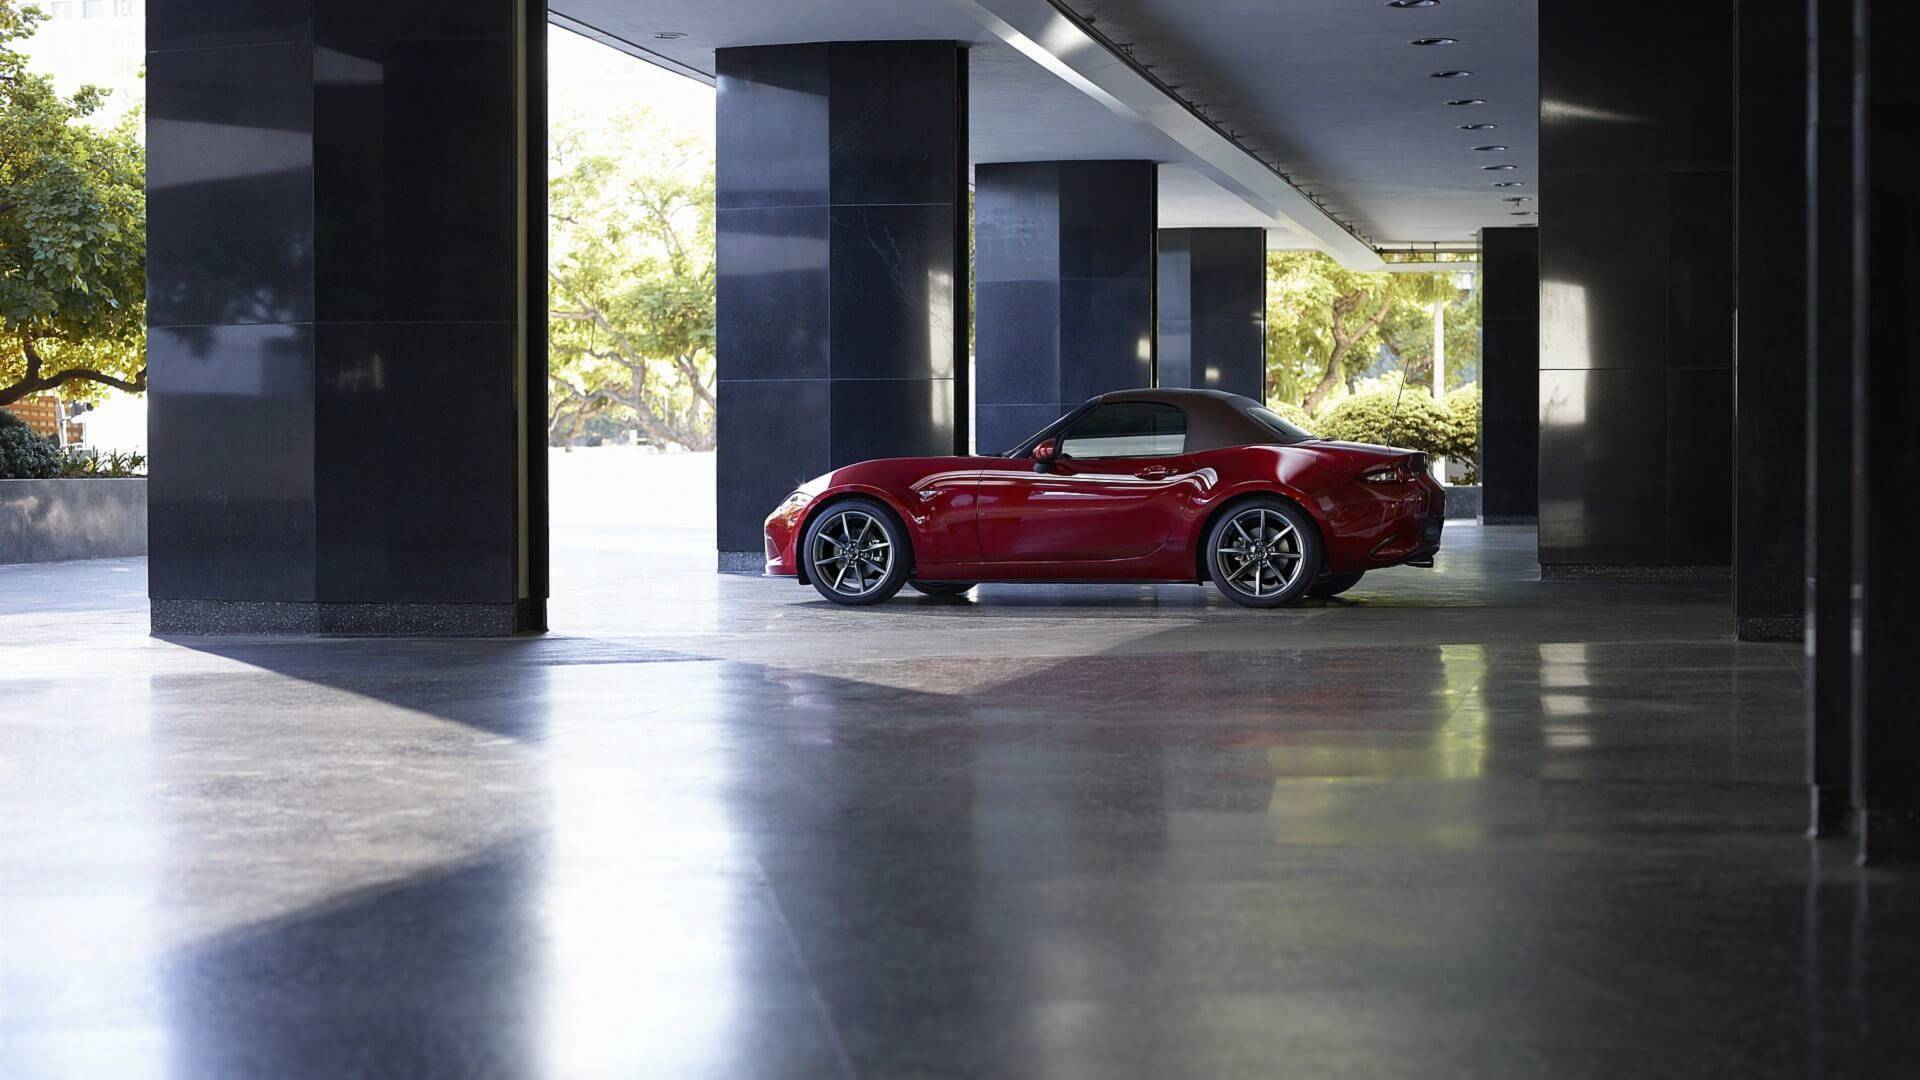 The Japanese car brand Mazda has announced the forthcoming update of the MX-5 roadster series